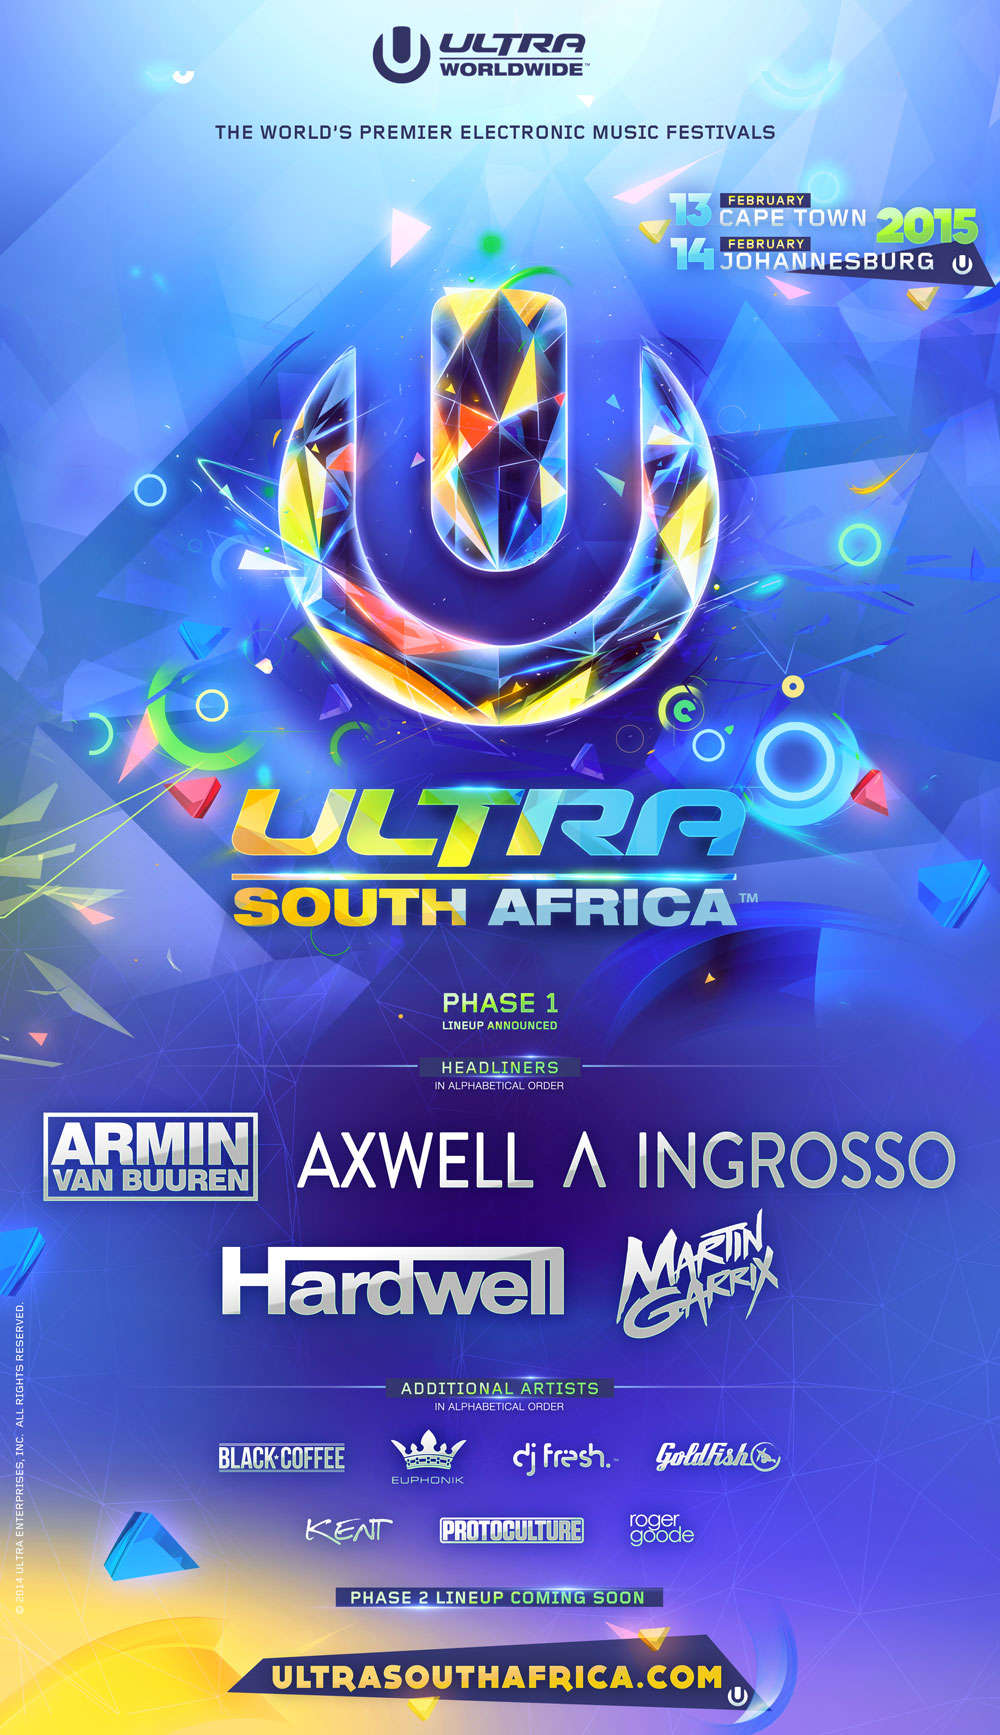 ULTRA_SOUTH_AFRICA_BILLING_PH1_08_3